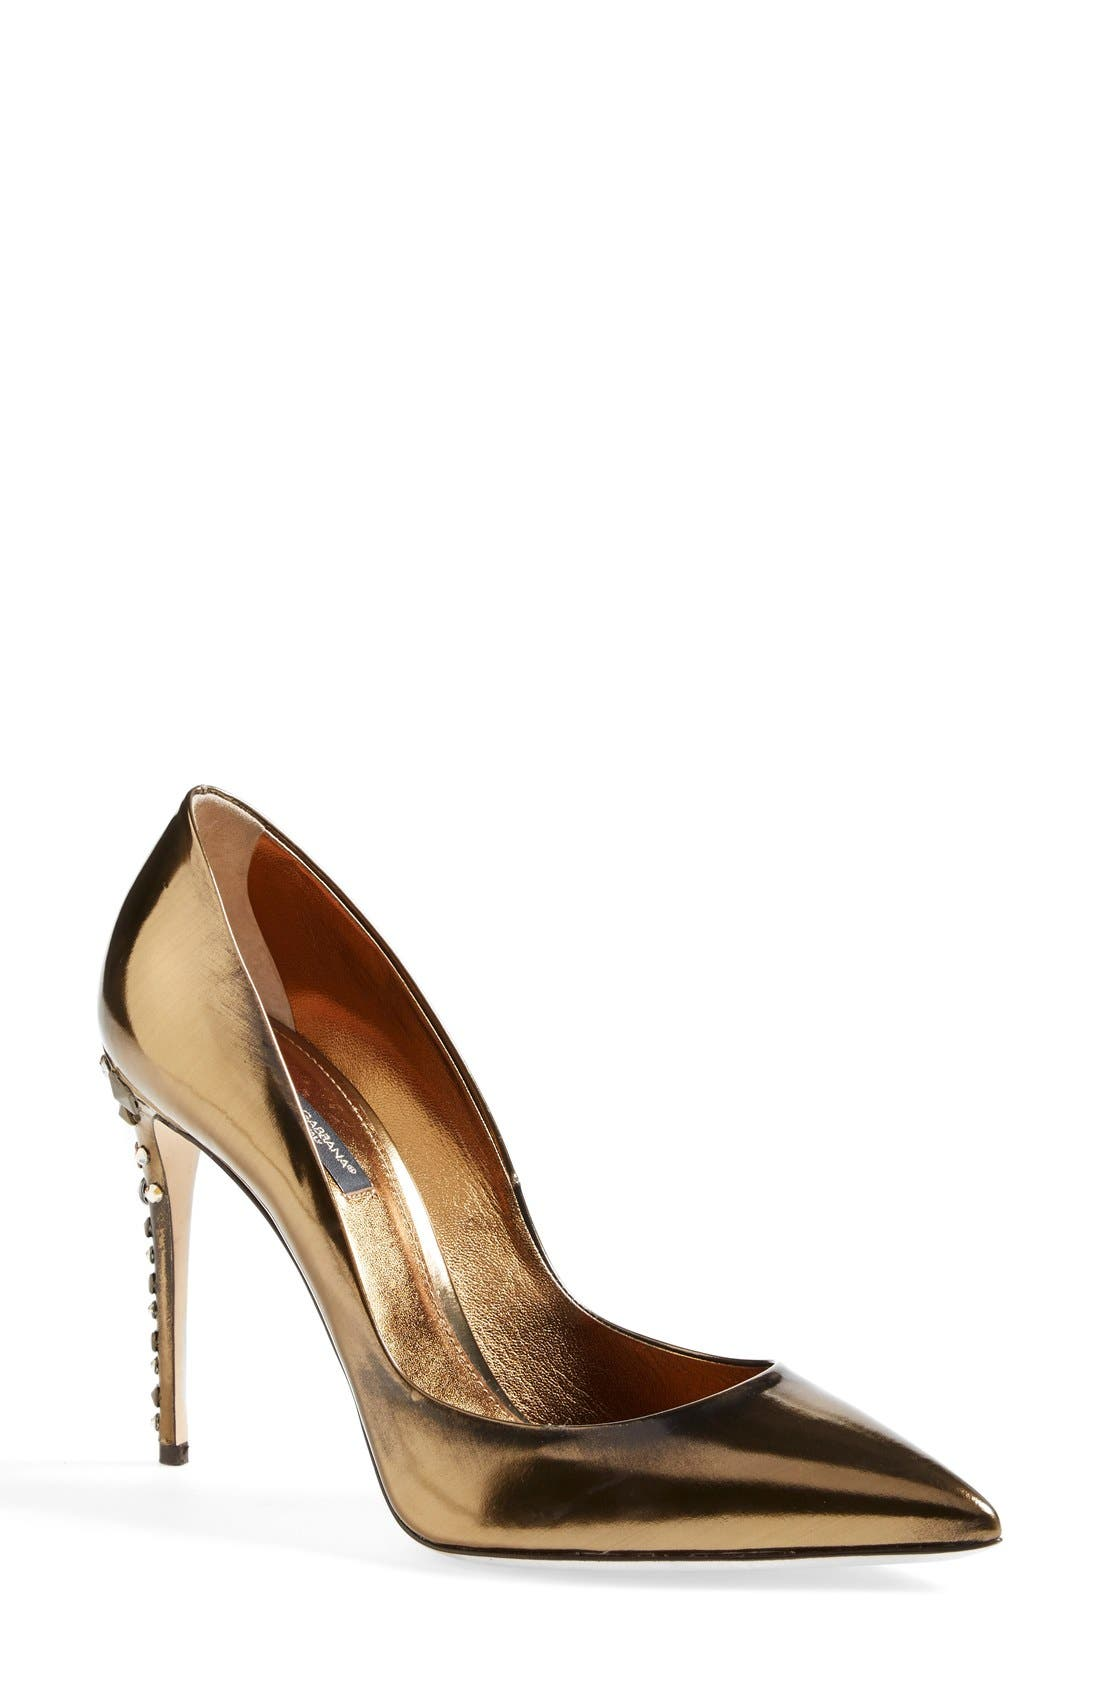 Alternate Image 1 Selected - Dolce&Gabbana Studded Heel Pump (Women)